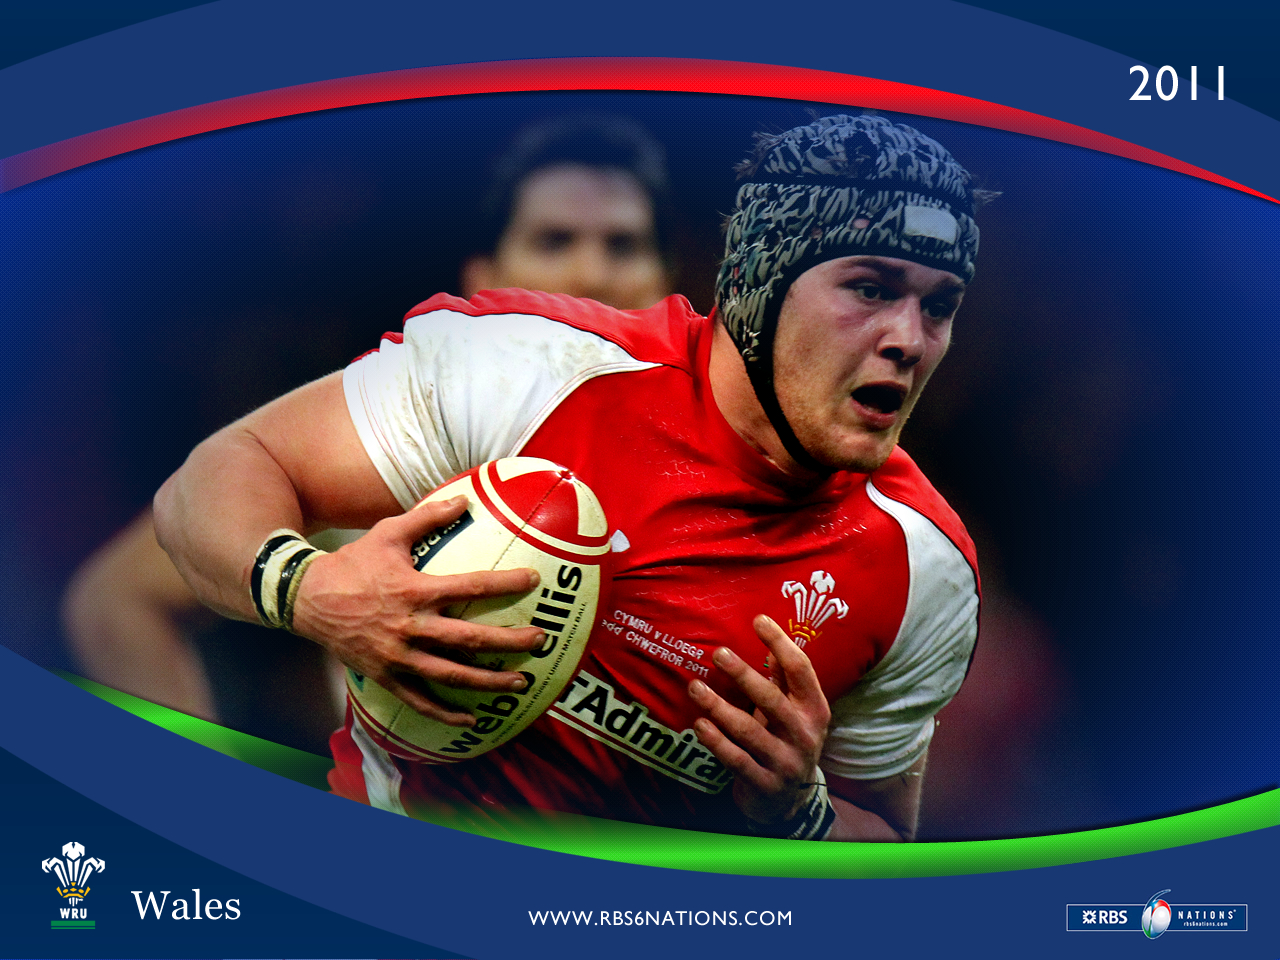 Wales 2011   Six Nations Rugby Wallpaper 24142864 1280x960